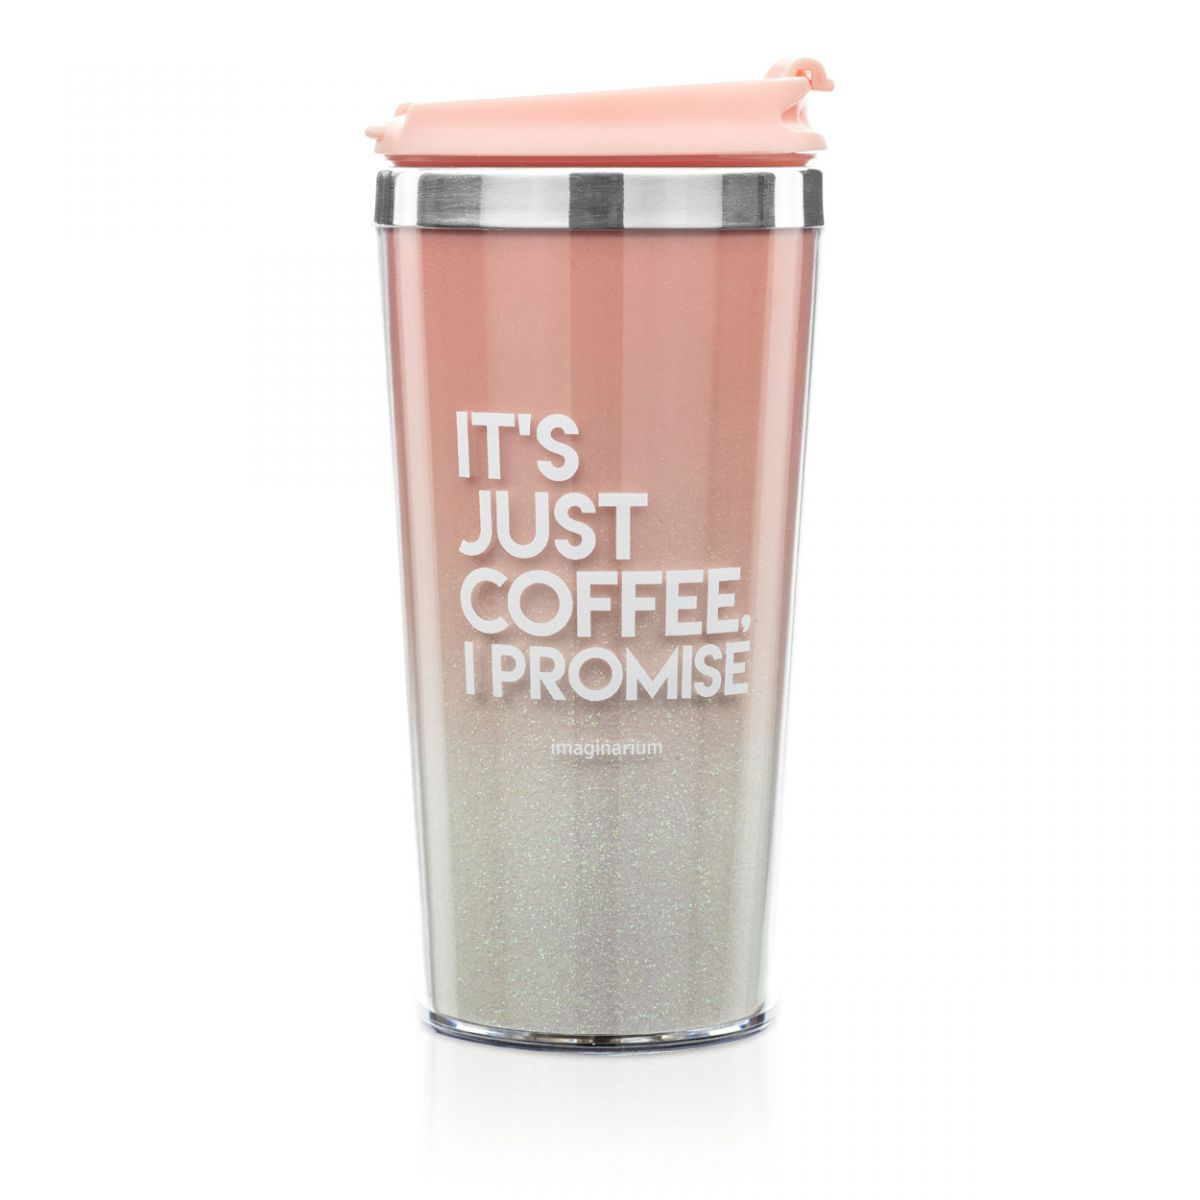 Its just coffee